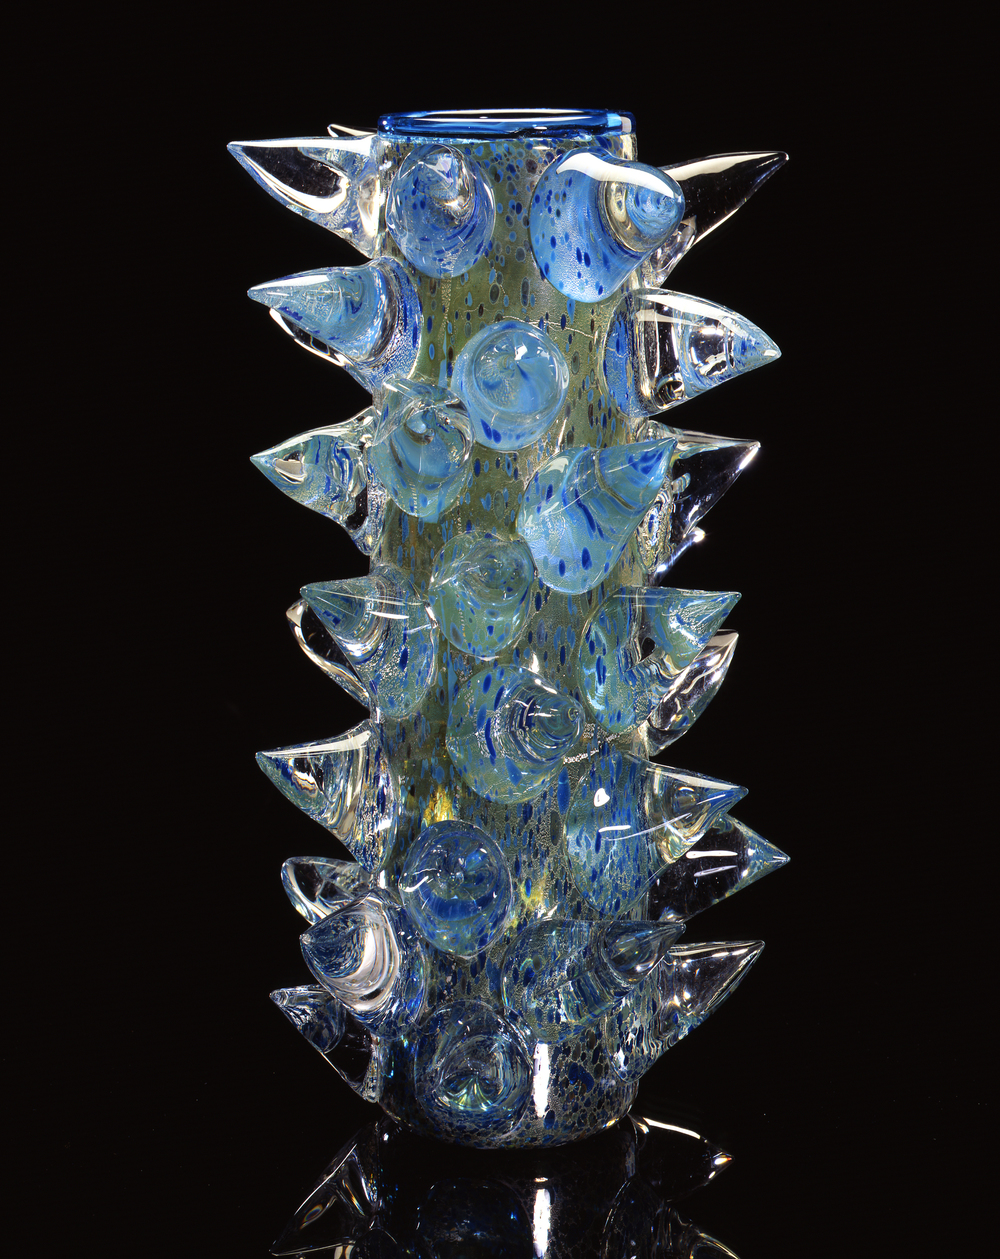 Dale Chihuly,  Silver over Starlight Blue Piccolo Venetian with Clear Prunts  (1994, glass, 10 x 6 x 6 inches)